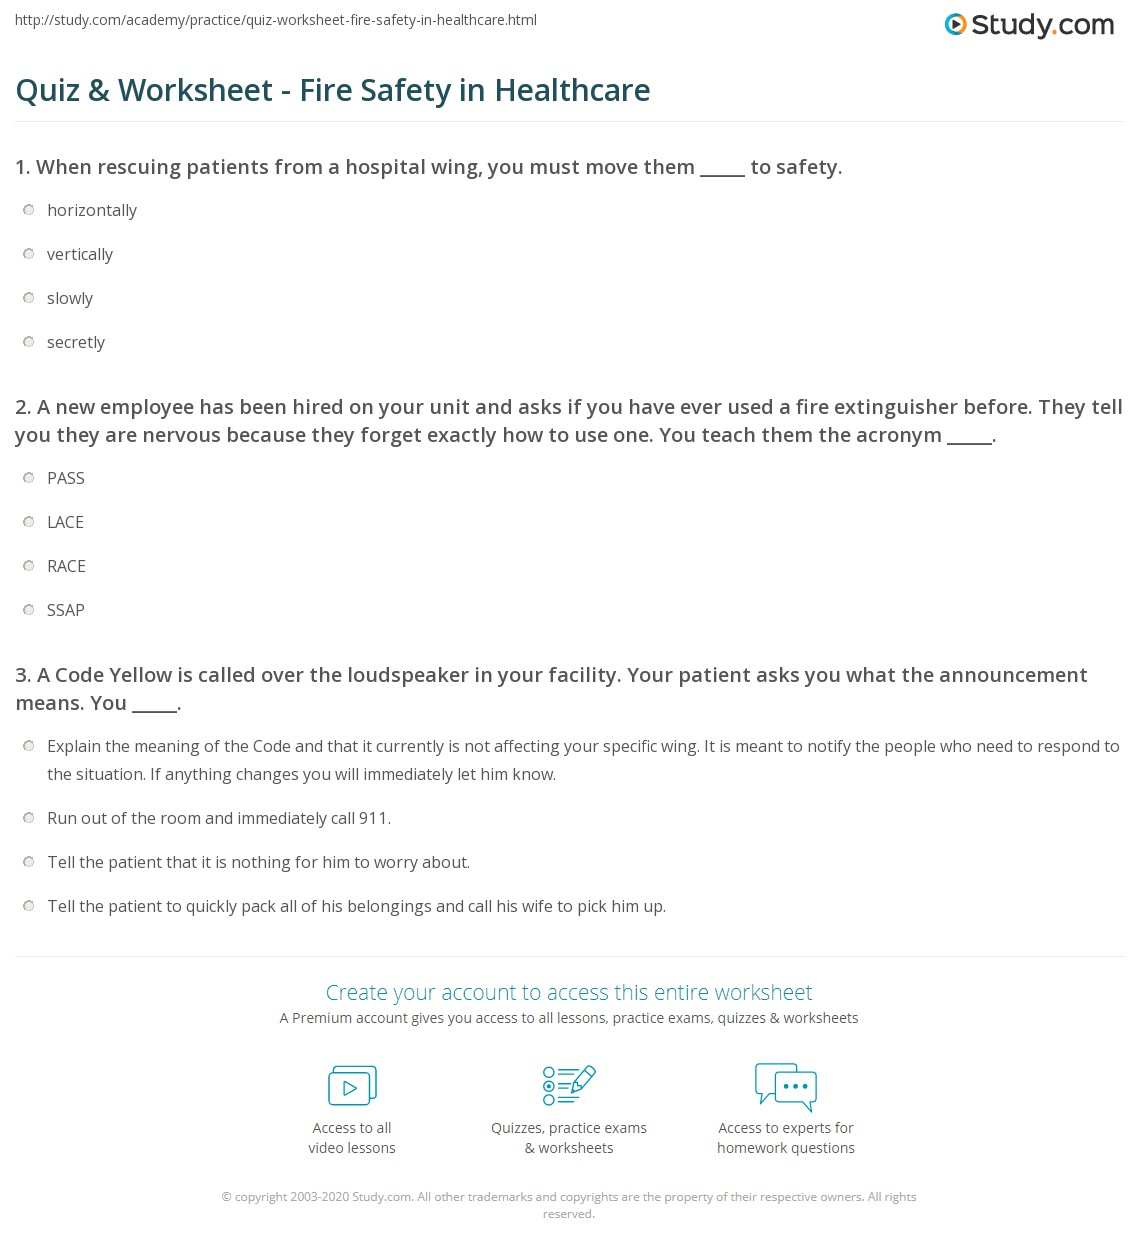 worksheet Fire Safety Worksheet quiz worksheet fire safety in healthcare study com a new employee has been hired on your unit and asks if you have ever used extinguisher before they tell are nervous because t